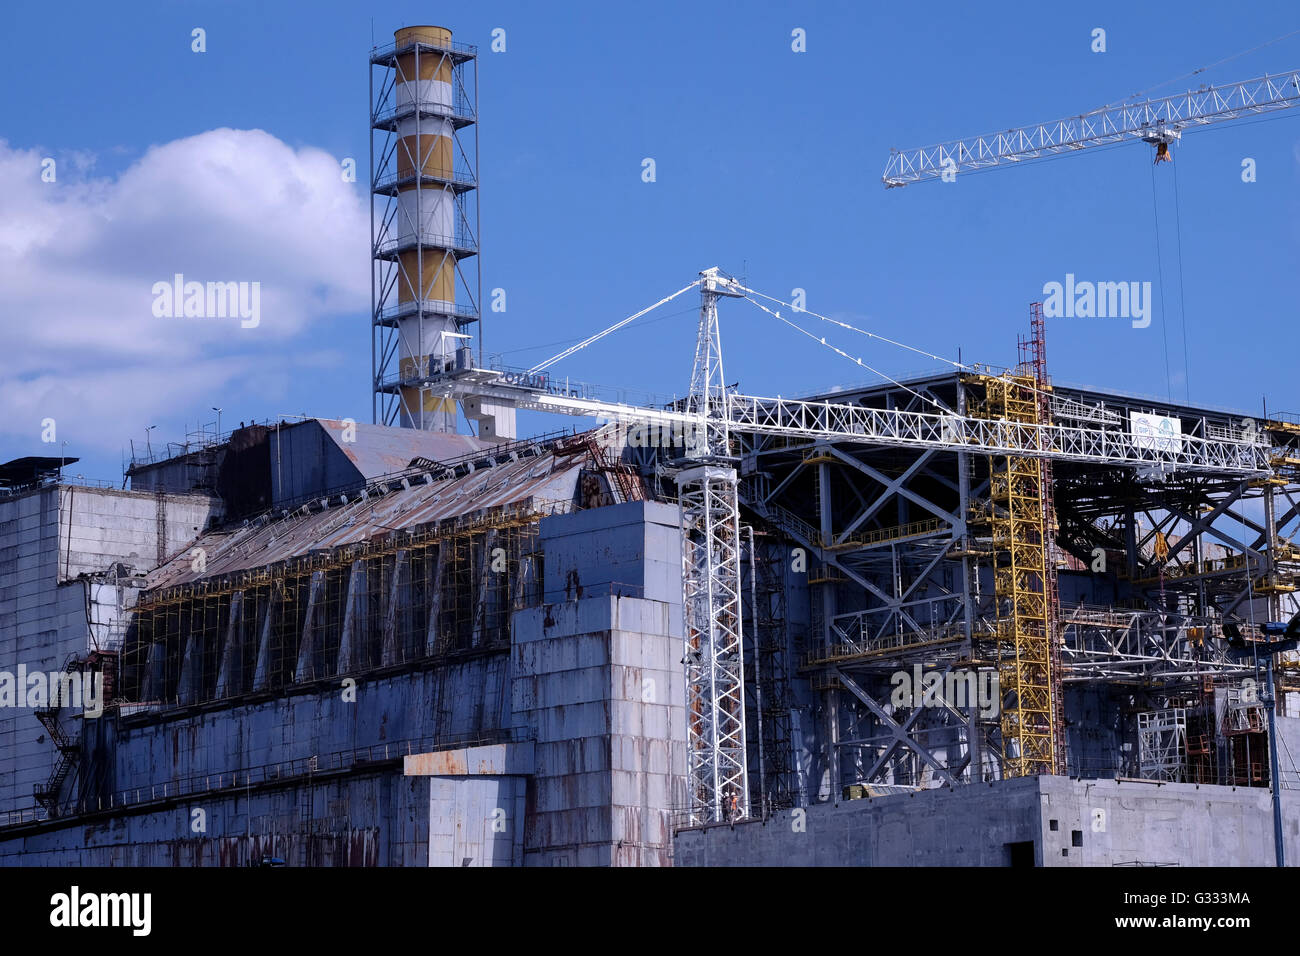 View of the concrete sarcophagus covering the damaged Reactor 4 of the former nuclear power plant located inside - Stock Image